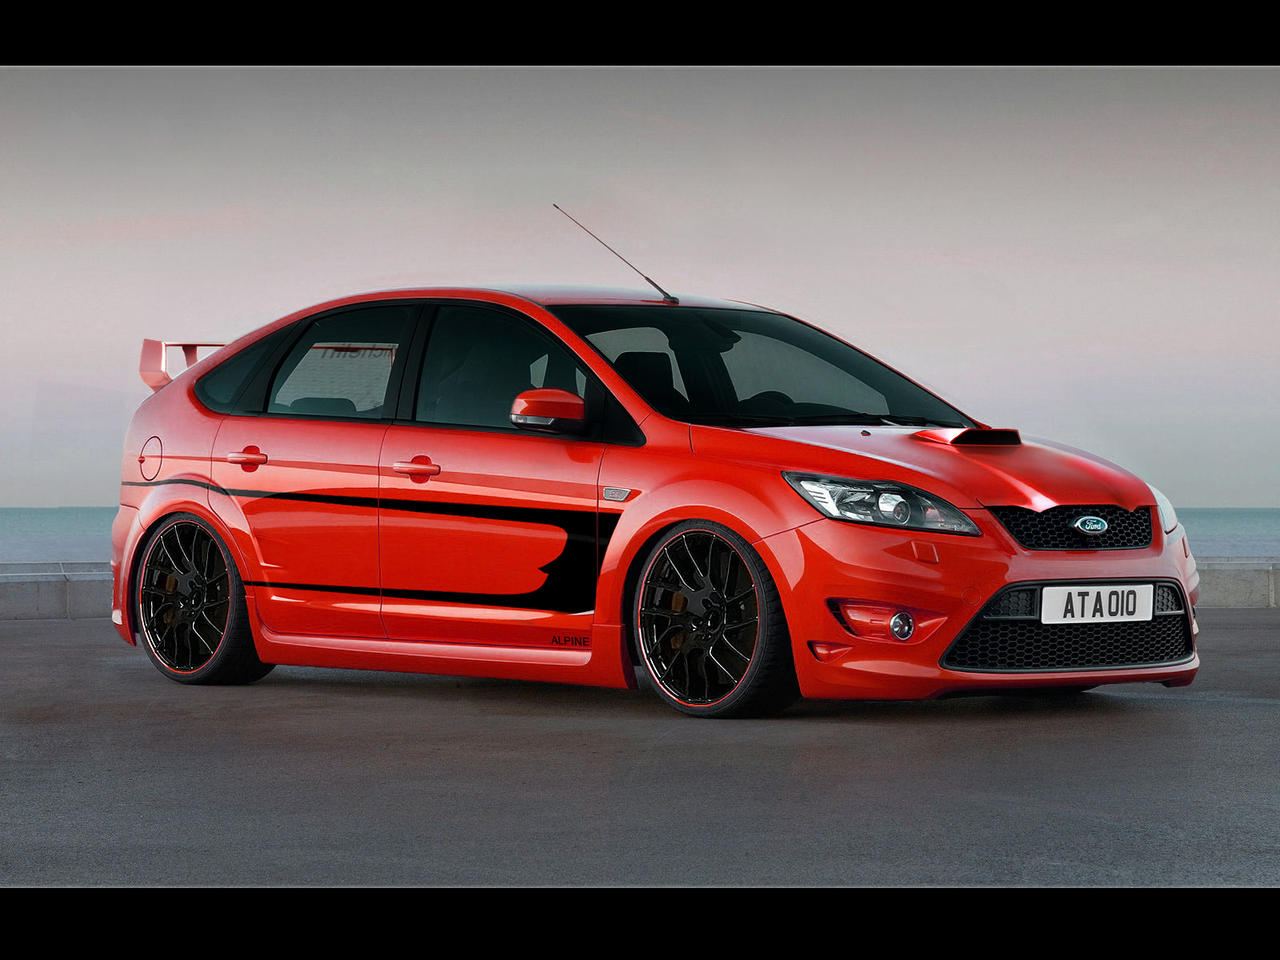 Ford Focus Virtual Tuning By Microalex On Deviantart